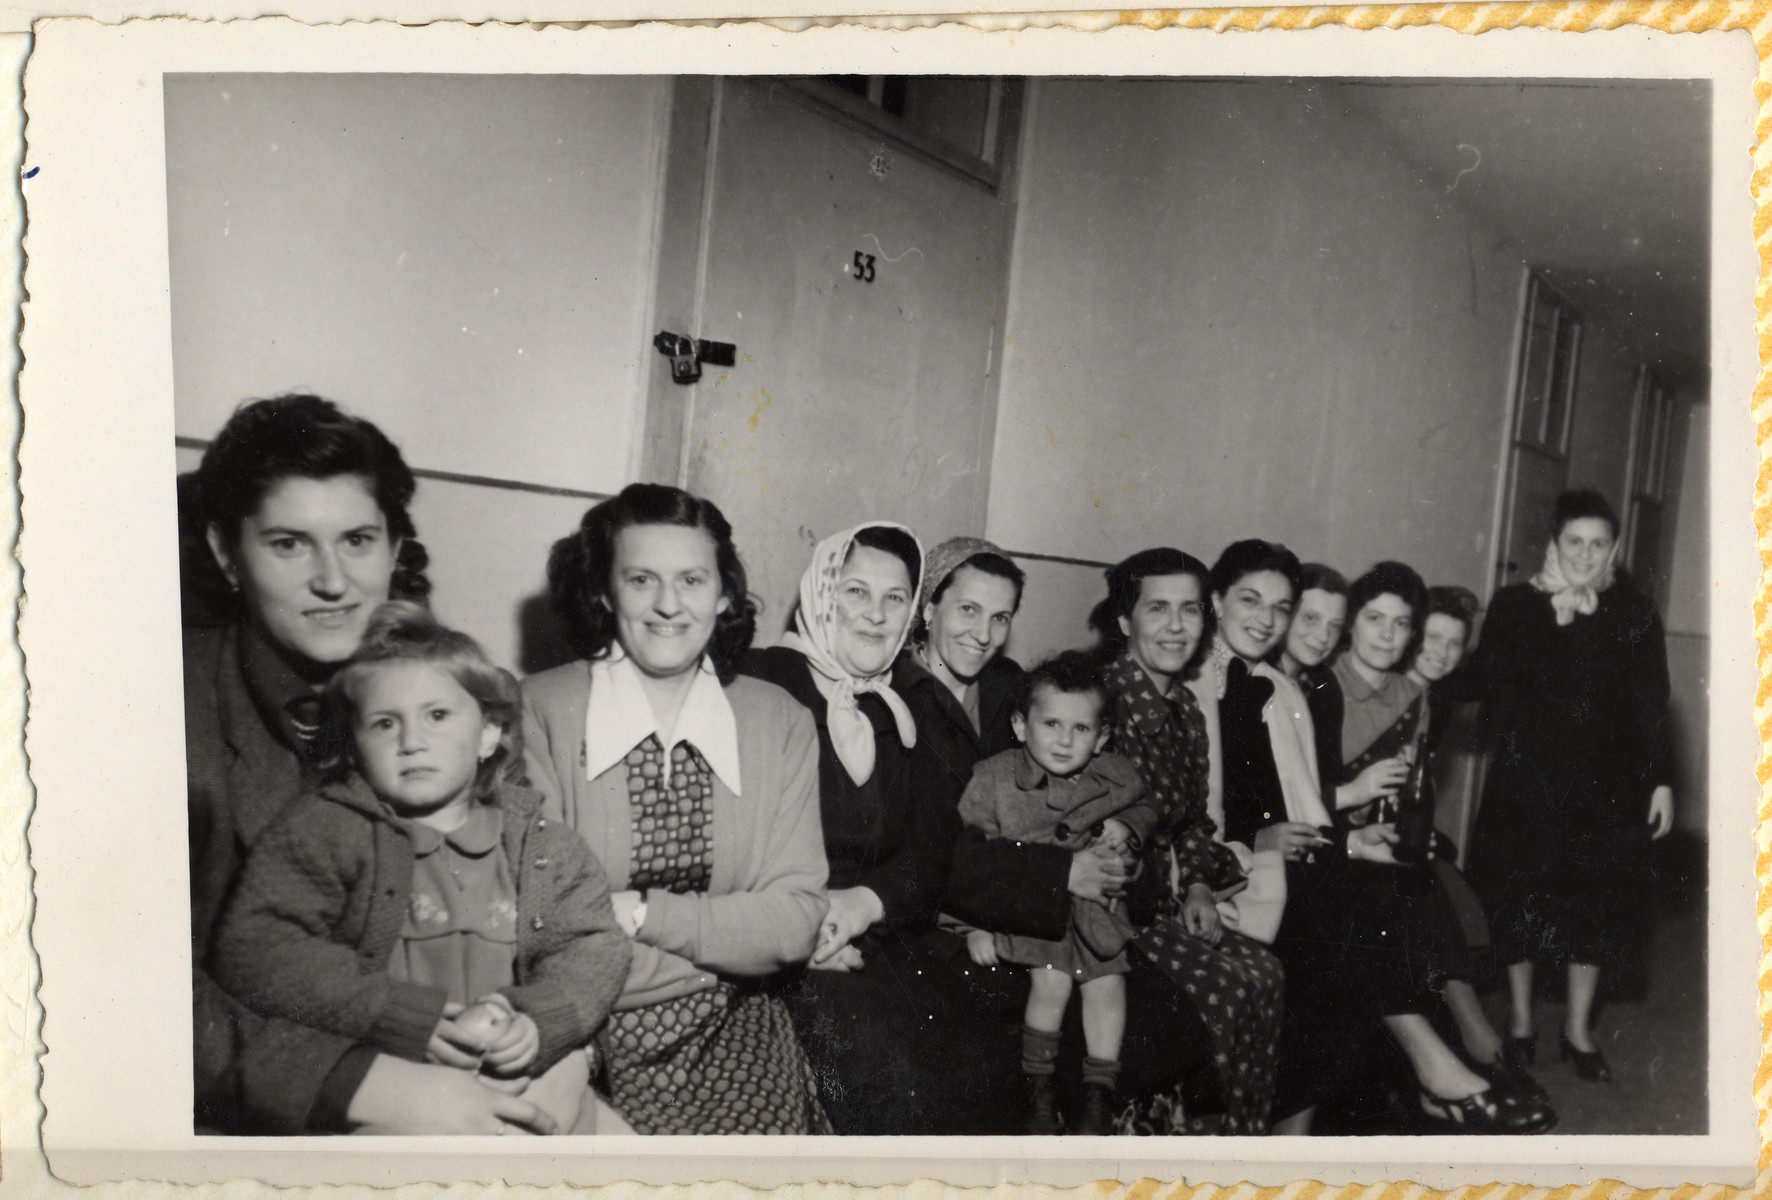 Group portrait of Jewish women, some holding young children on their laps, in the Hallein displaced persons' camp.